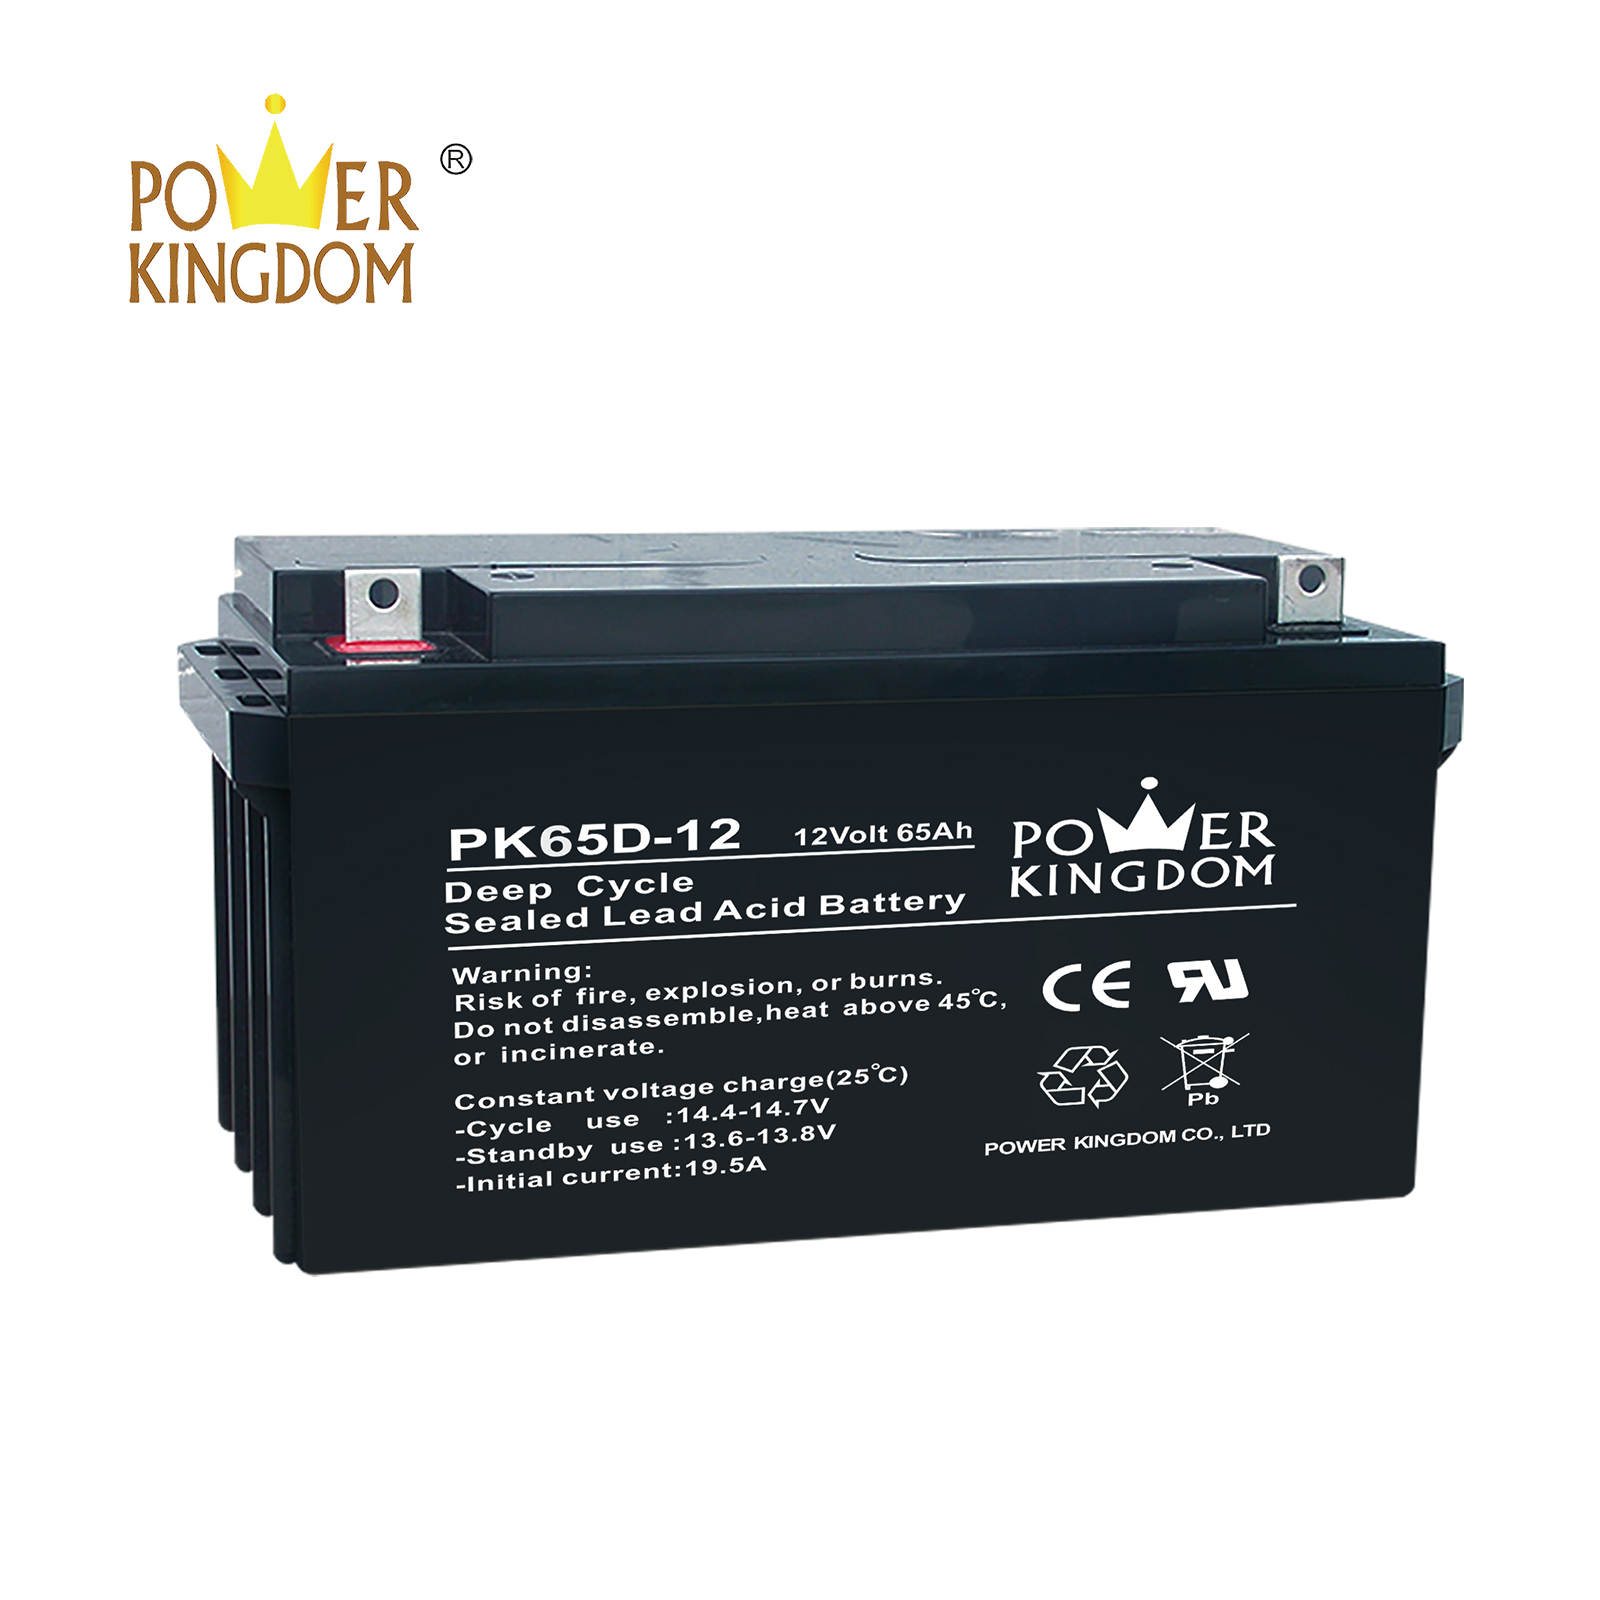 Power Kingdom 130 amp deep cycle battery factory wind power systems